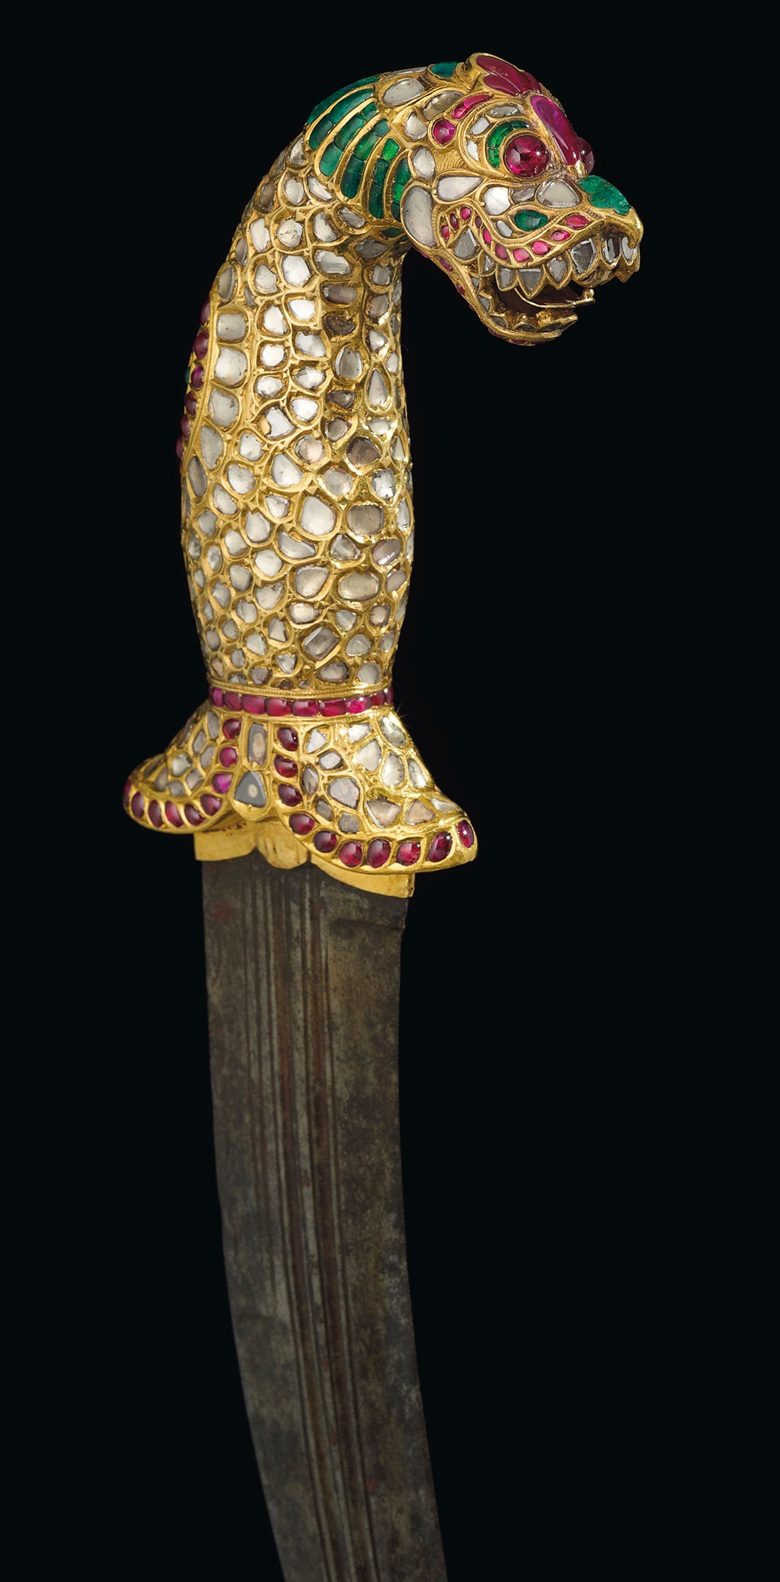 A gold gem set hilted dagger (kinjal), Tanjore or Mysore, south India, 1790-1810. 13⅜  ins (34.1  cm) long. Estimate $500,000-700,000. Offered in Maharajas & Mughal Magnificence on 19 June 2019 at Christie's in New York